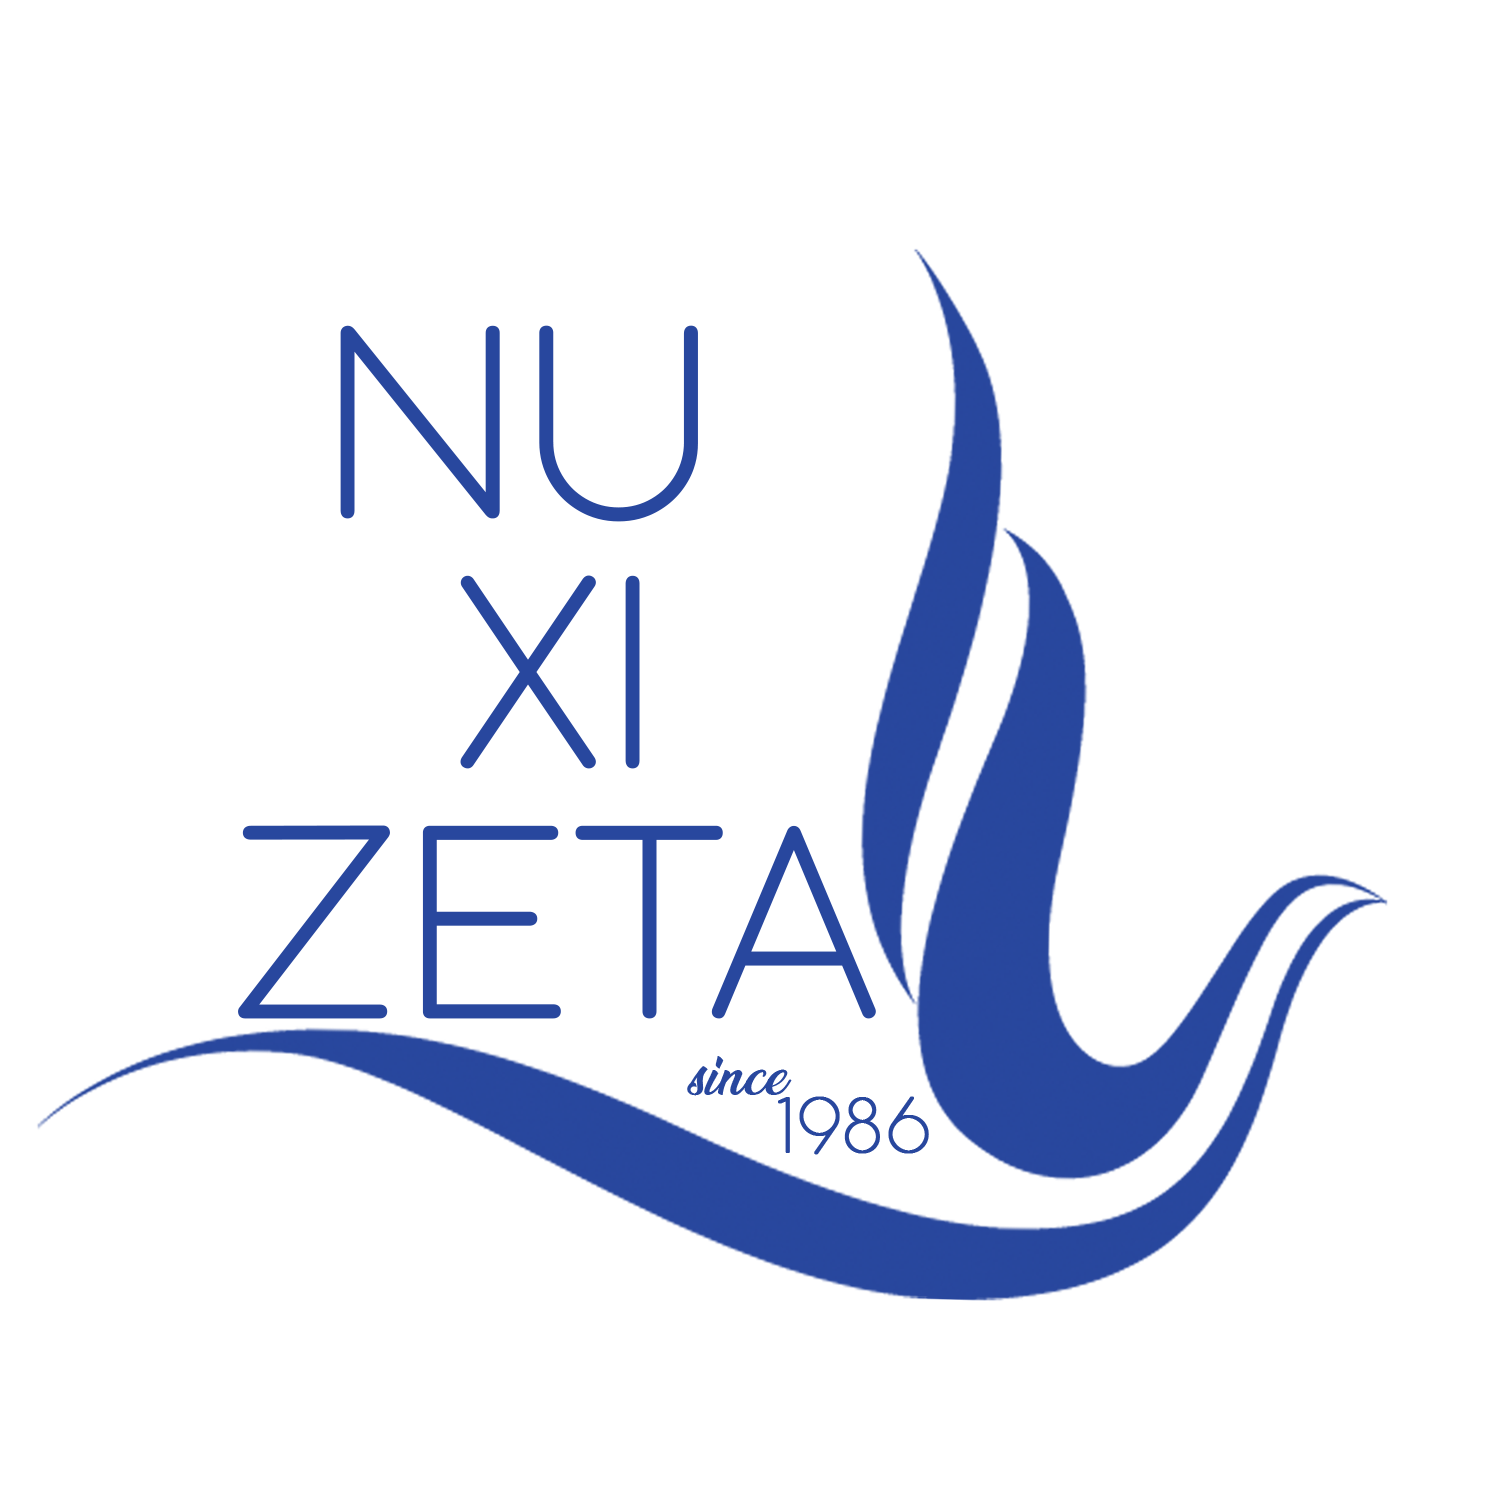 Nu Xi Zeta Chapter, Zeta Phi Beta Sorority, Inc.